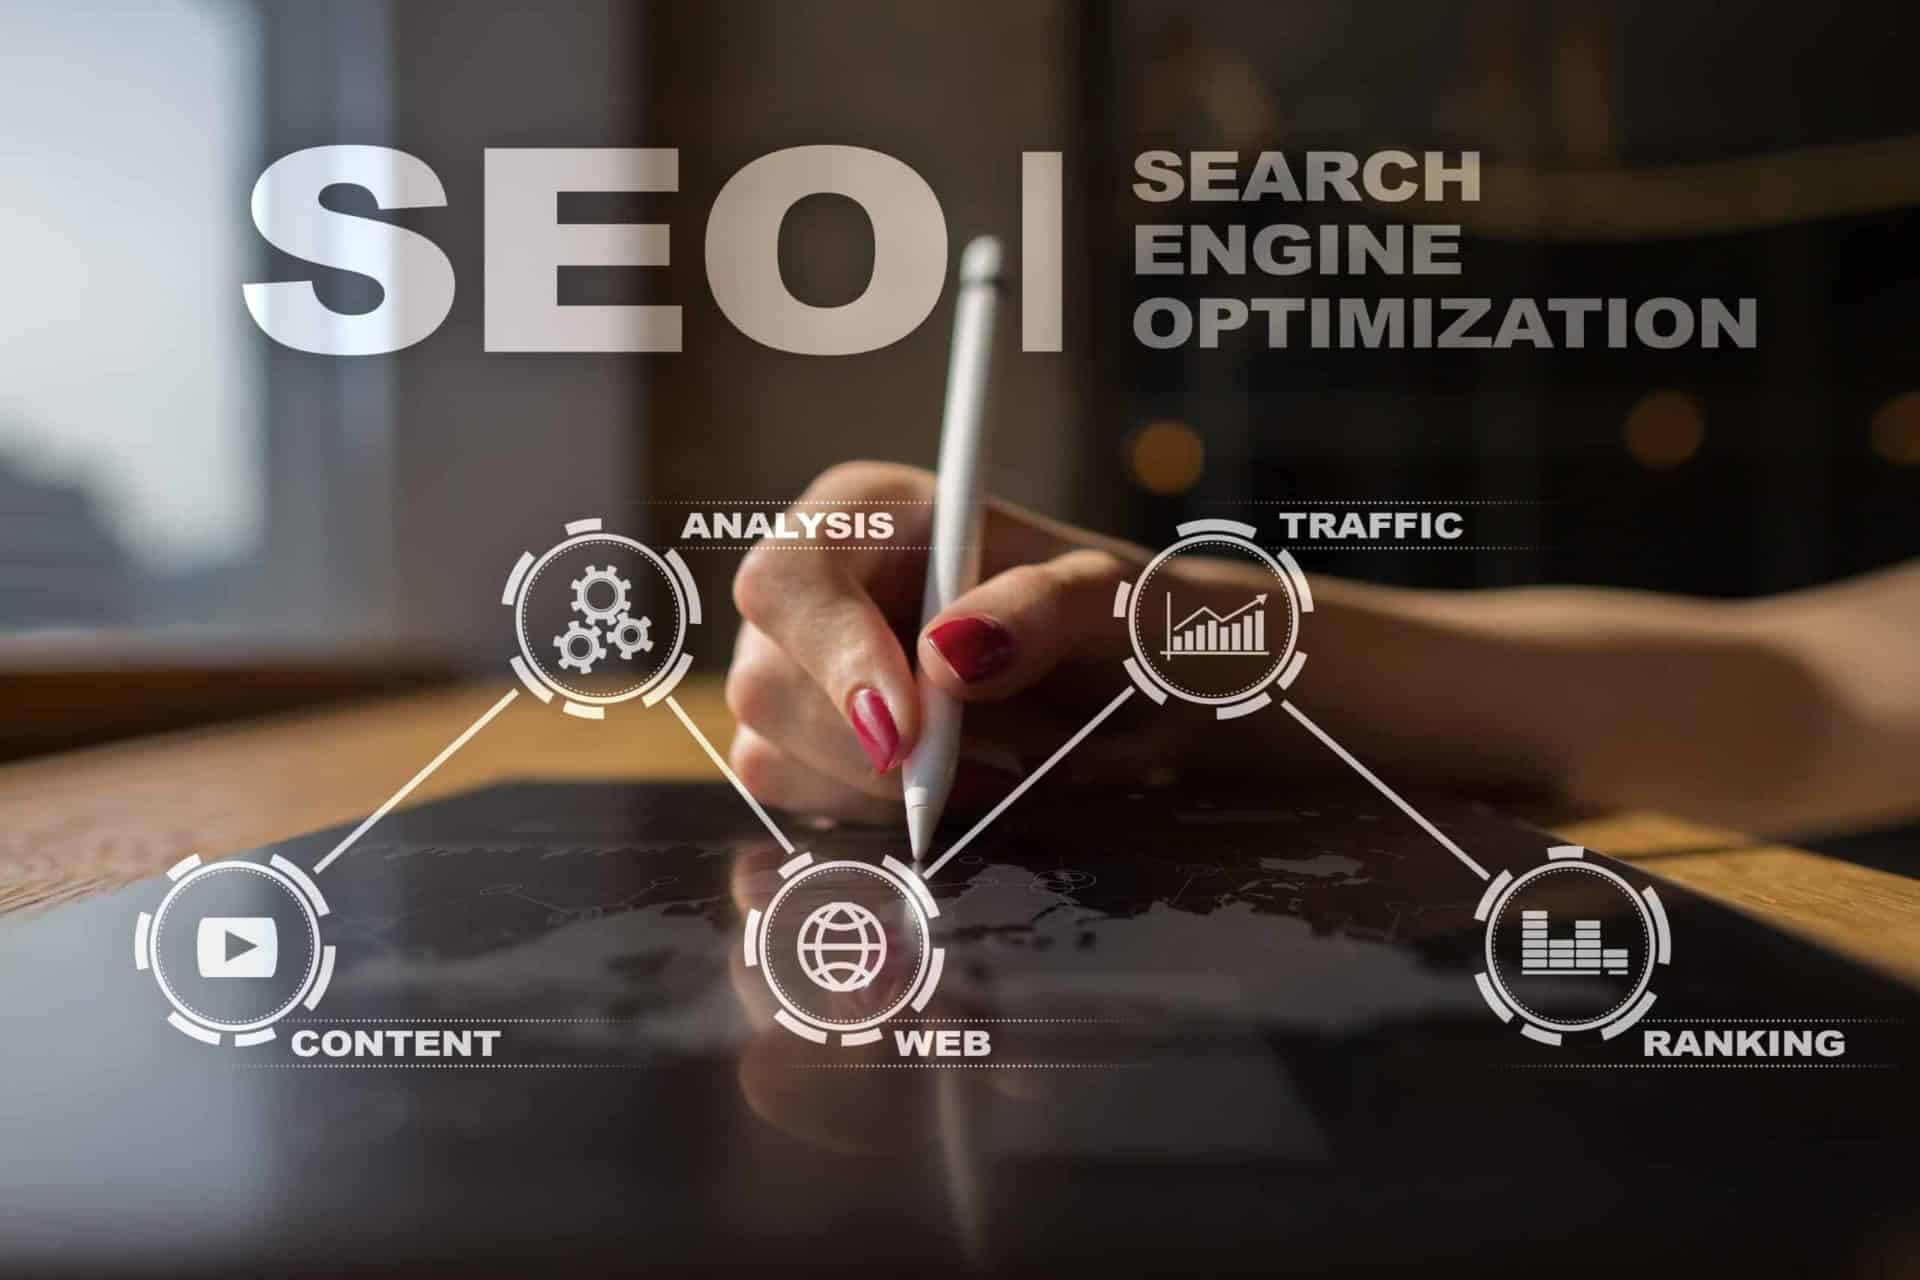 How Much Should I Expect To Pay For SEO In Australia As An SME?